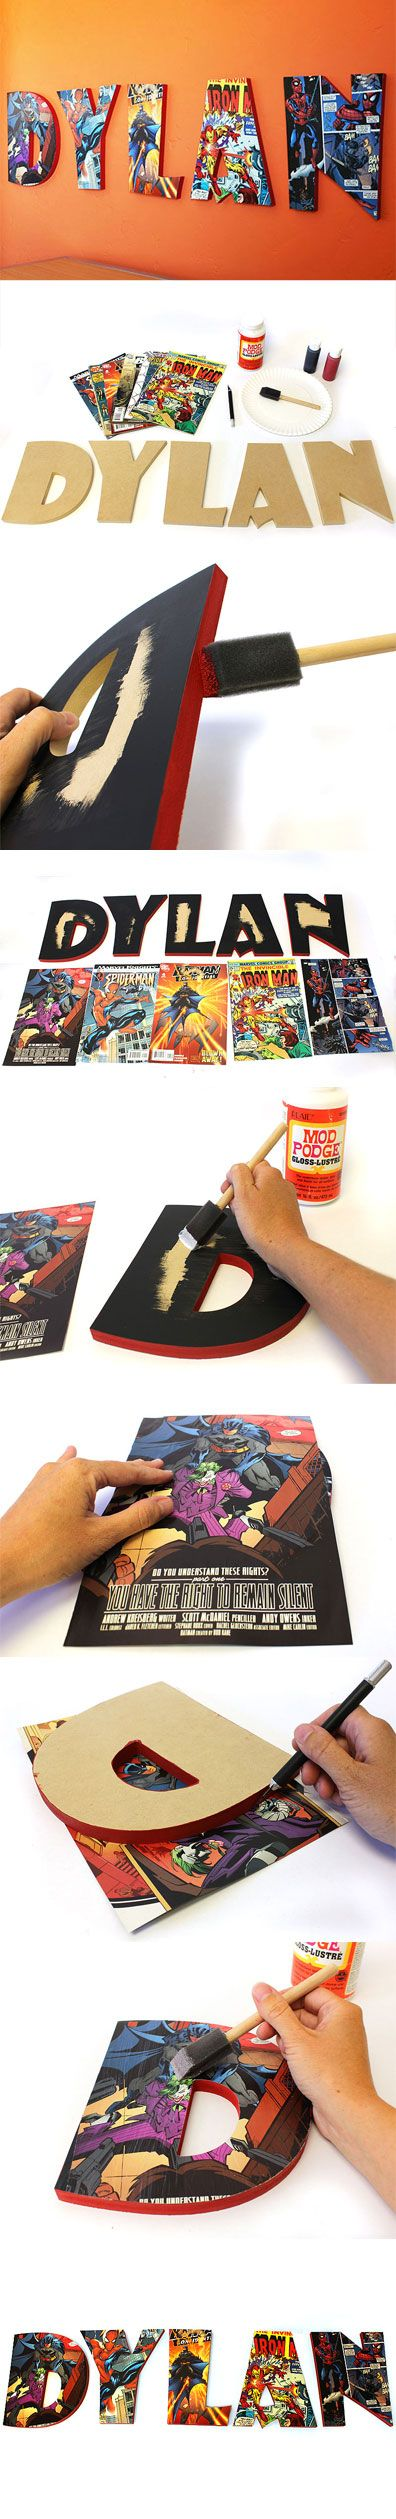 How to Make Comic Book Letters   Wood Comic Book Letters   CraftCuts.com BEST IDEA EVER & soooo effective